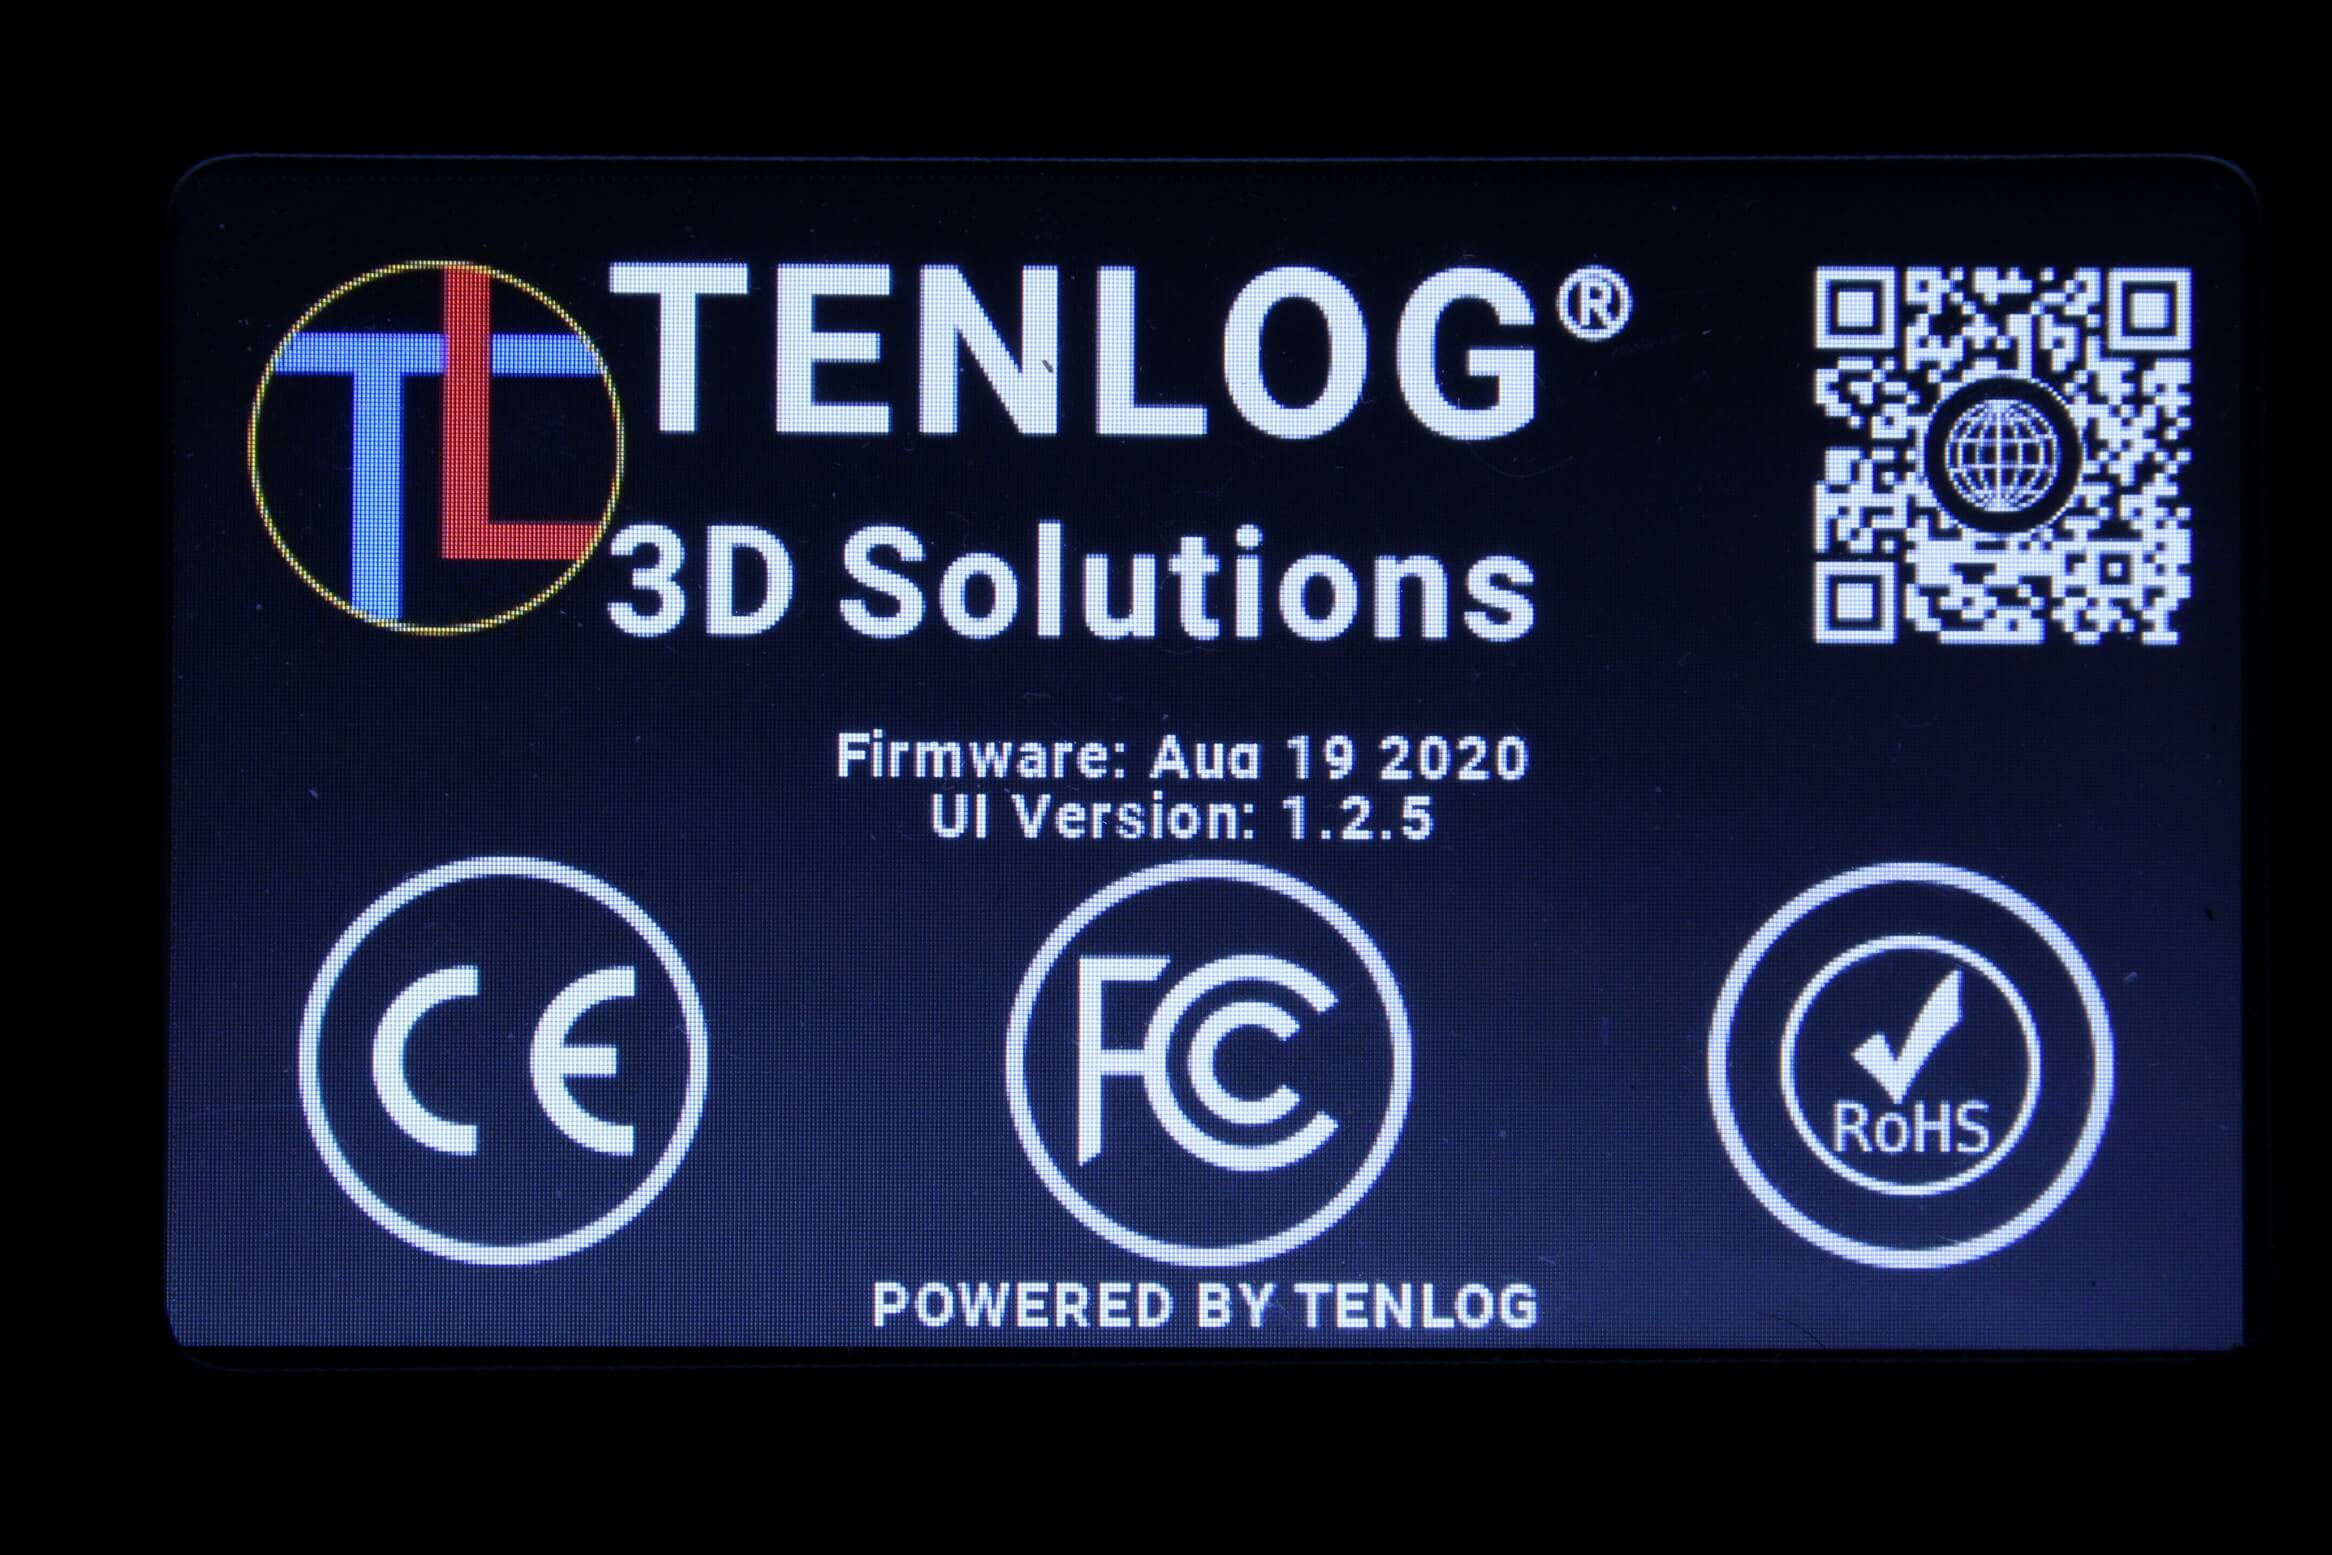 Tenlog TL D3 Pro Screen Interface 2 | Tenlog TL-D3 PRO Review: IDEX on a Budget